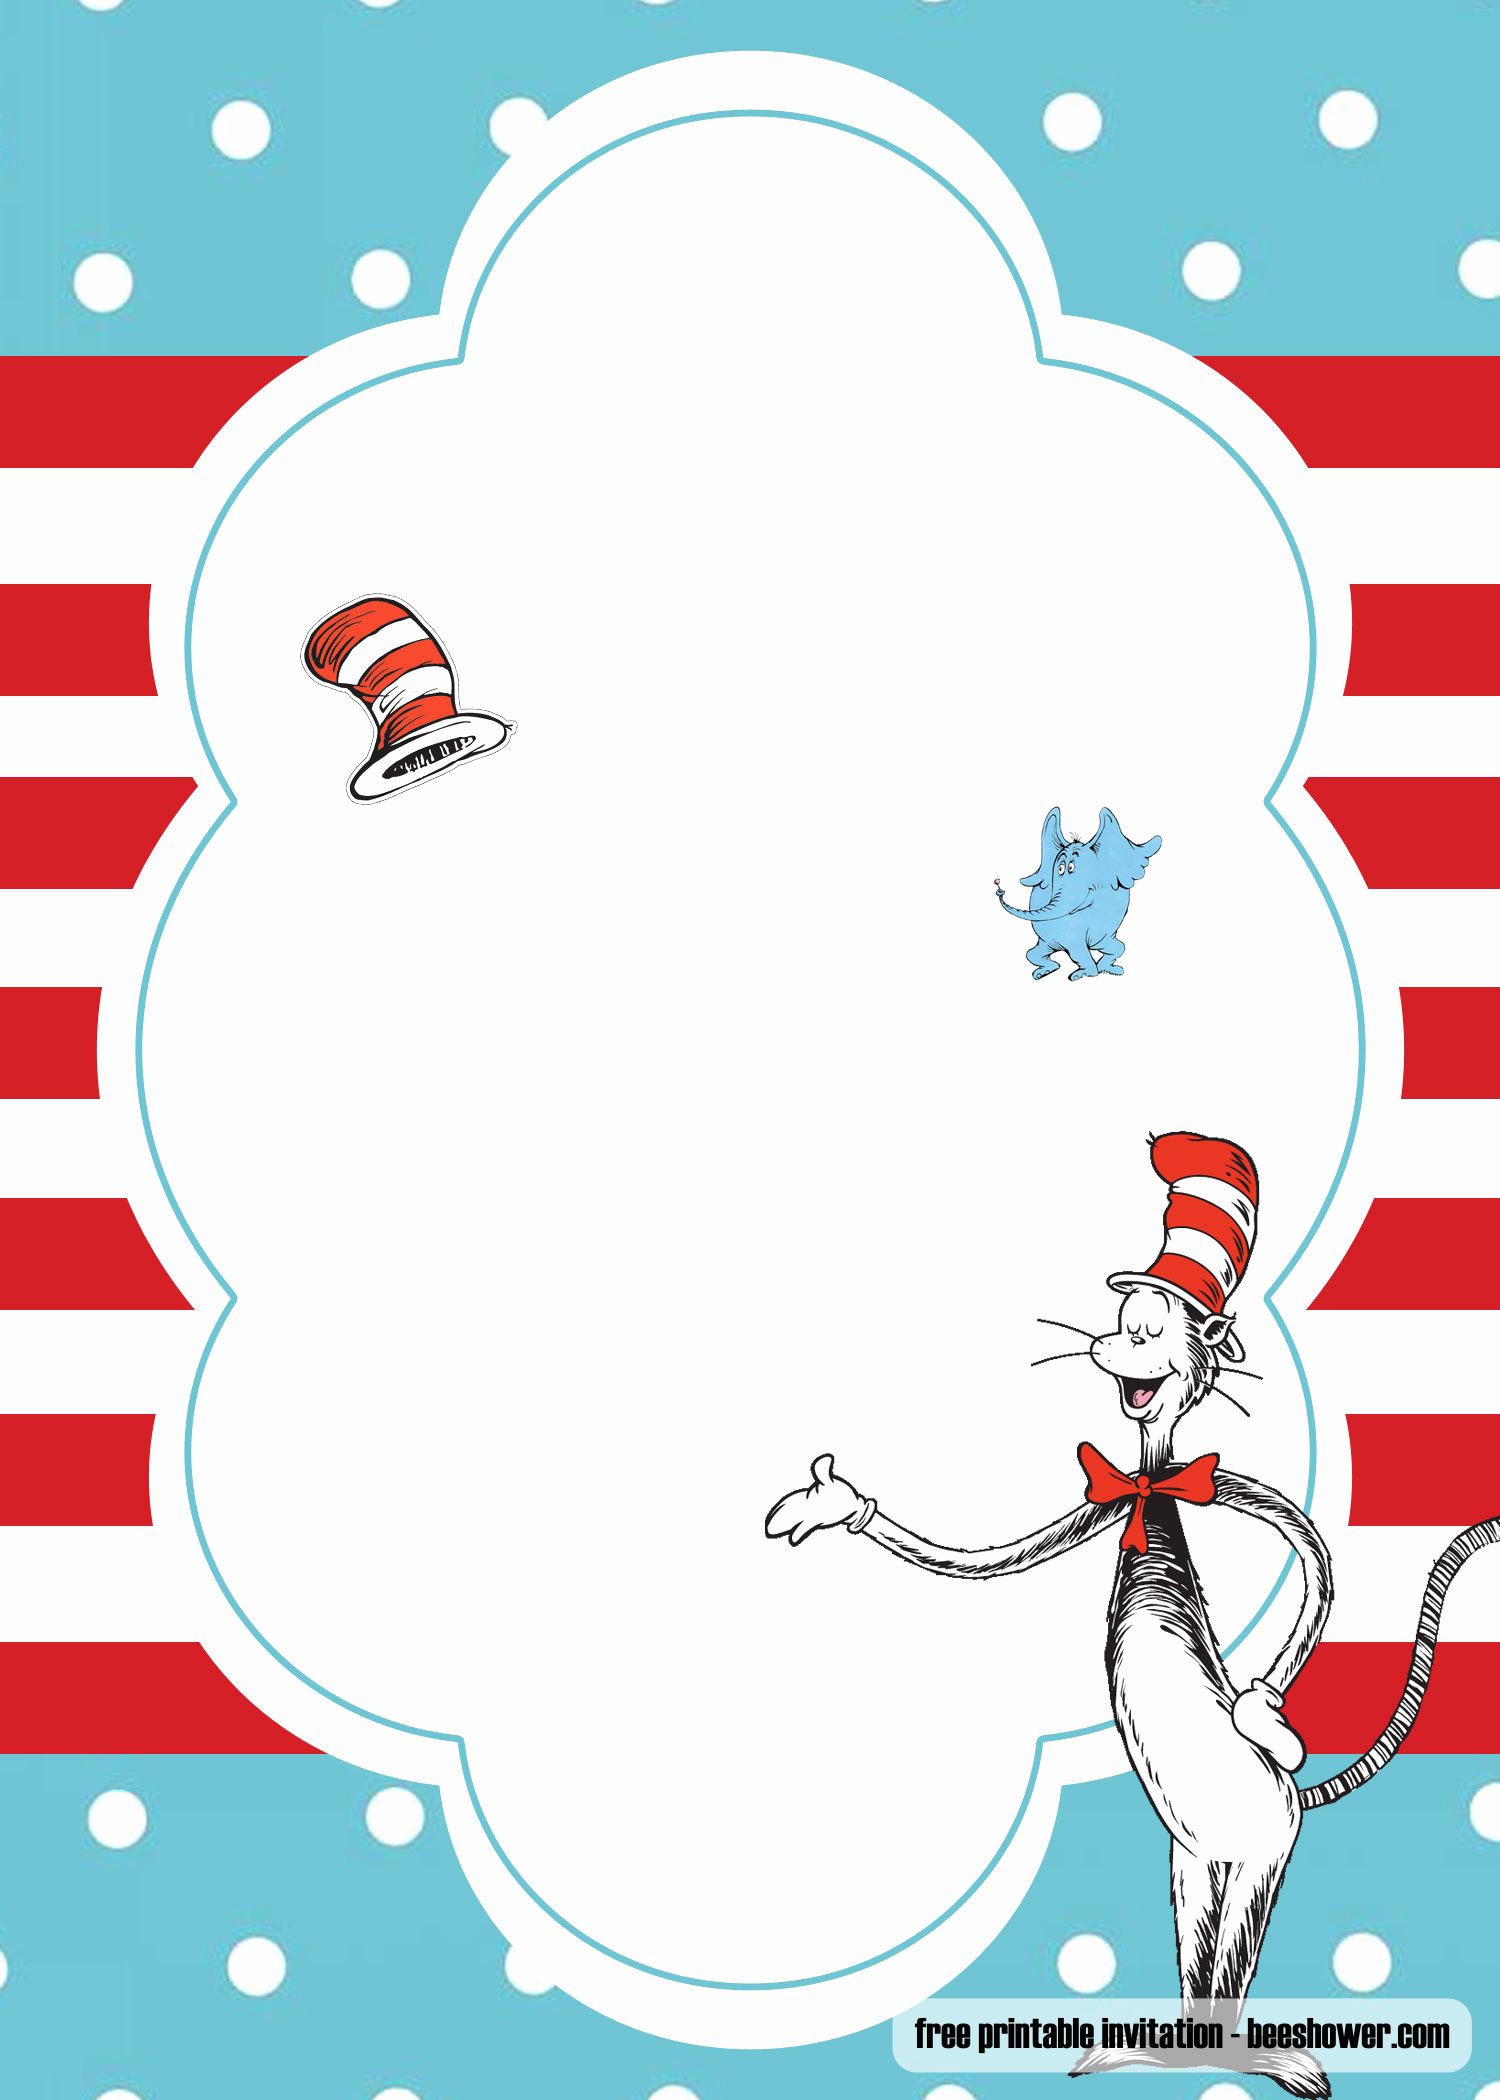 Dr Seuss Invitation Template Lovely Free Dr Seuss Template for Your Baby Shower Invitations